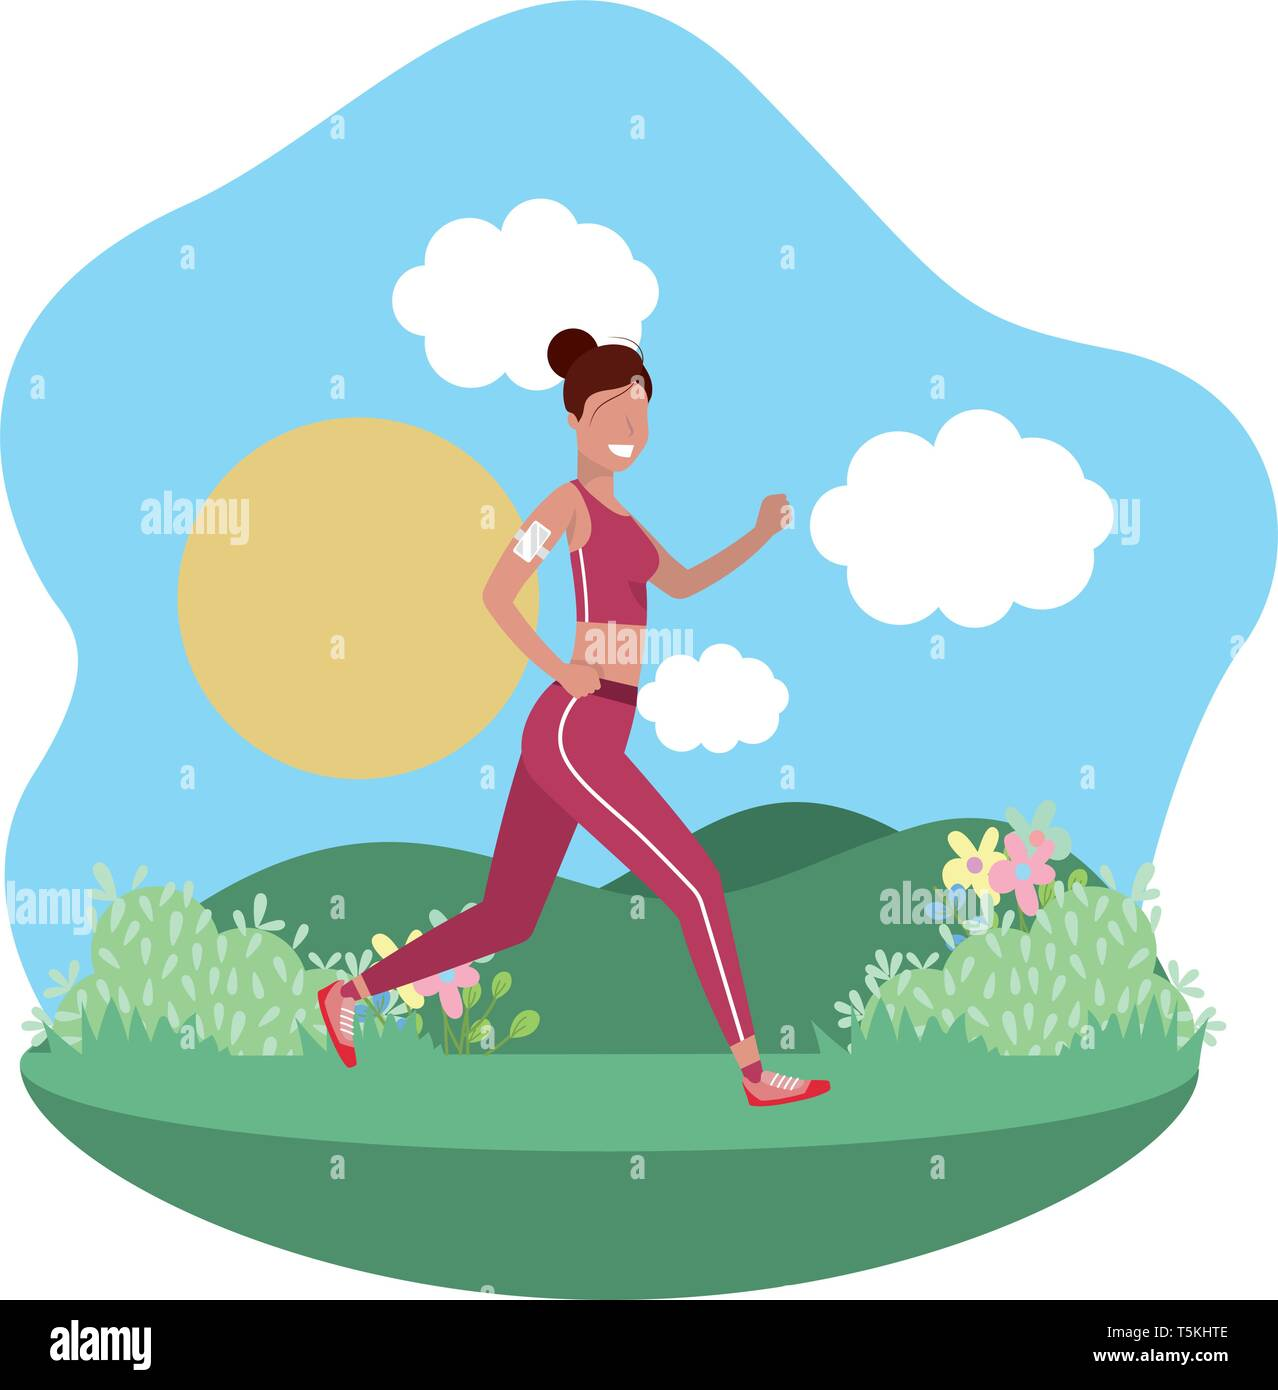 6b91aad756698 fitness exercise woman running workout healthy fit lifestyle outdoor scene  cartoon vector illustration graphic design